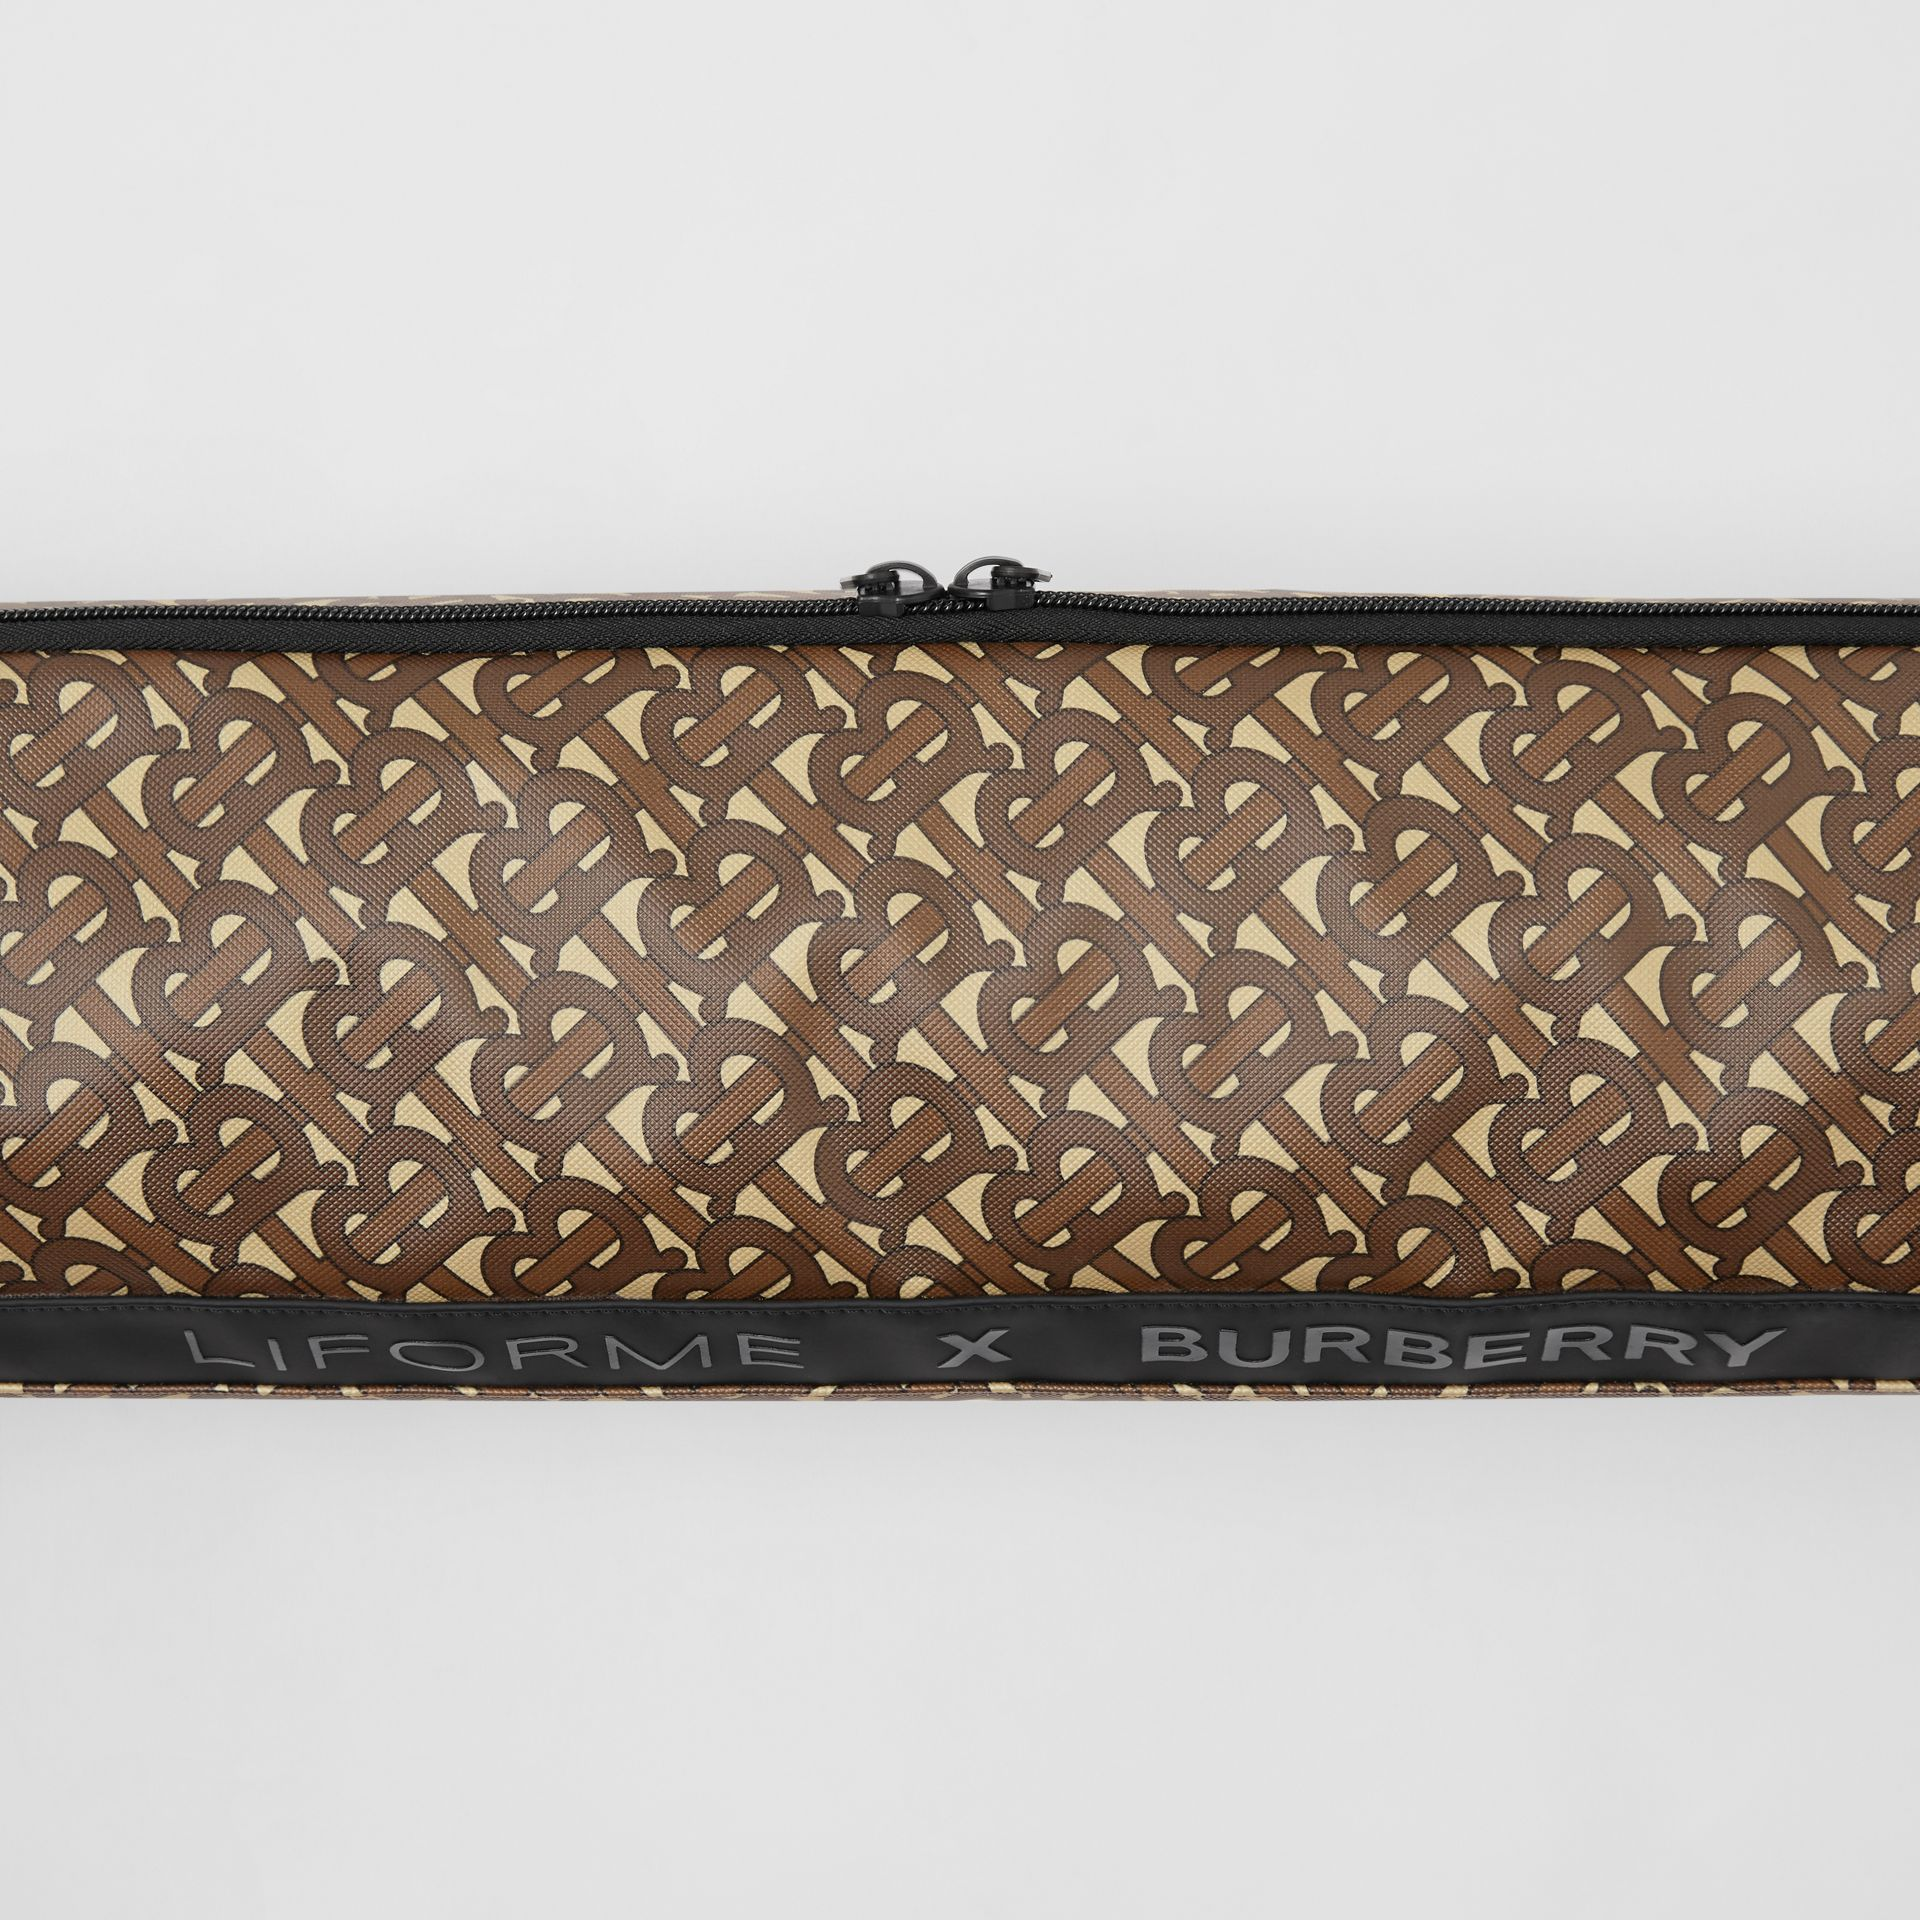 Liforme x Burberry Monogram Motif Yoga Mat in Bridle Brown | Burberry Australia - gallery image 4